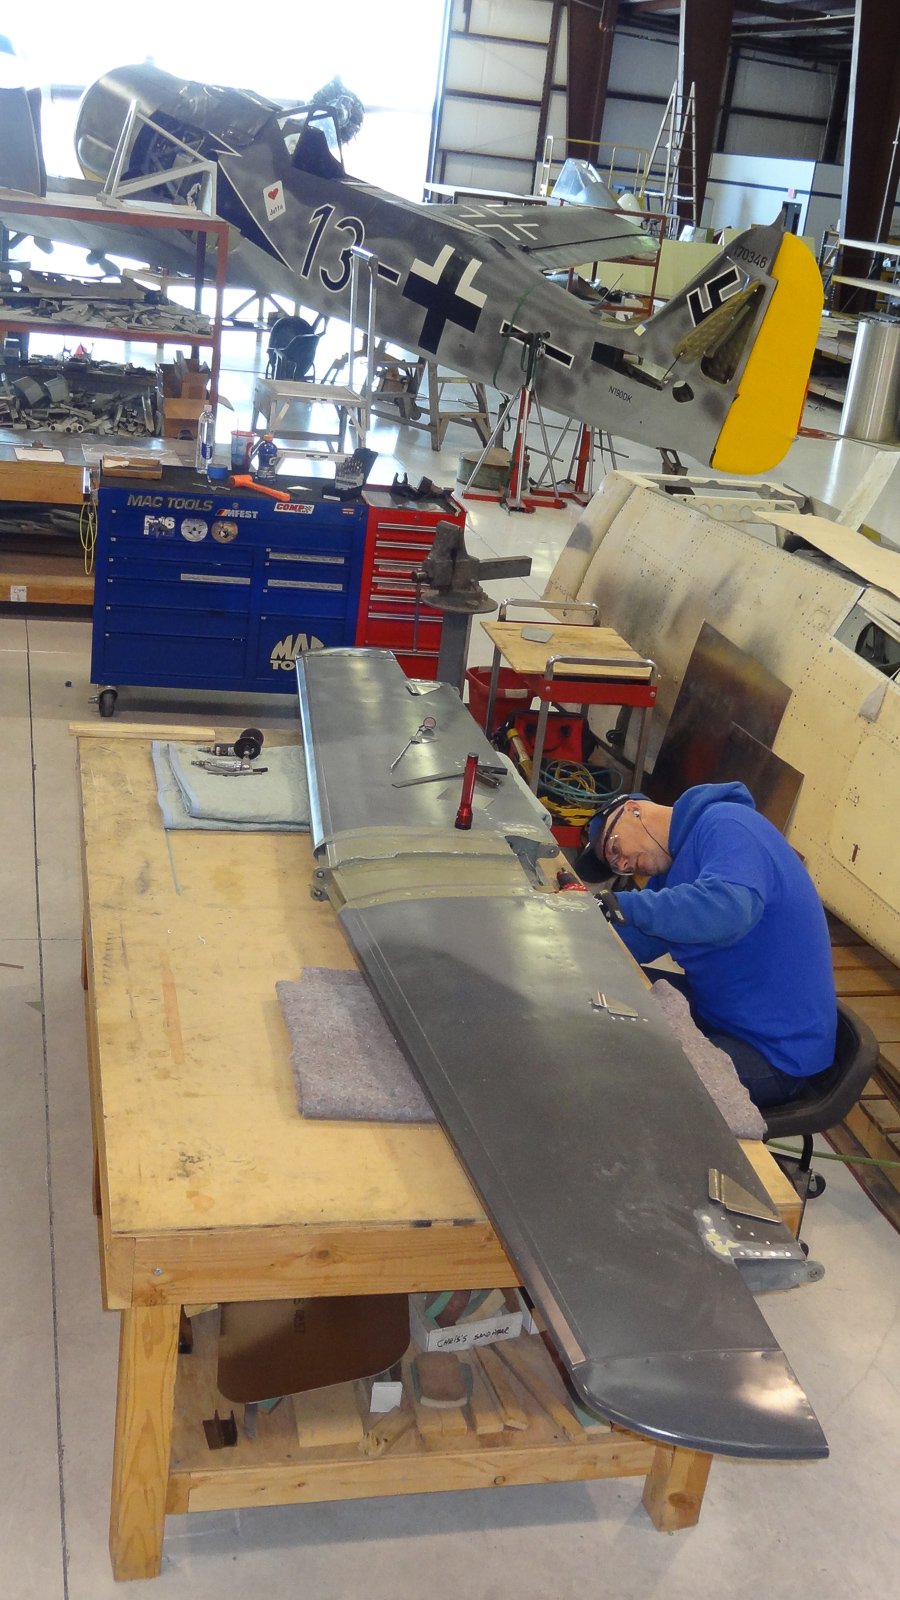 Installing doublers on the horizontal stabilizer. (photo via GossHawk Unlimited)